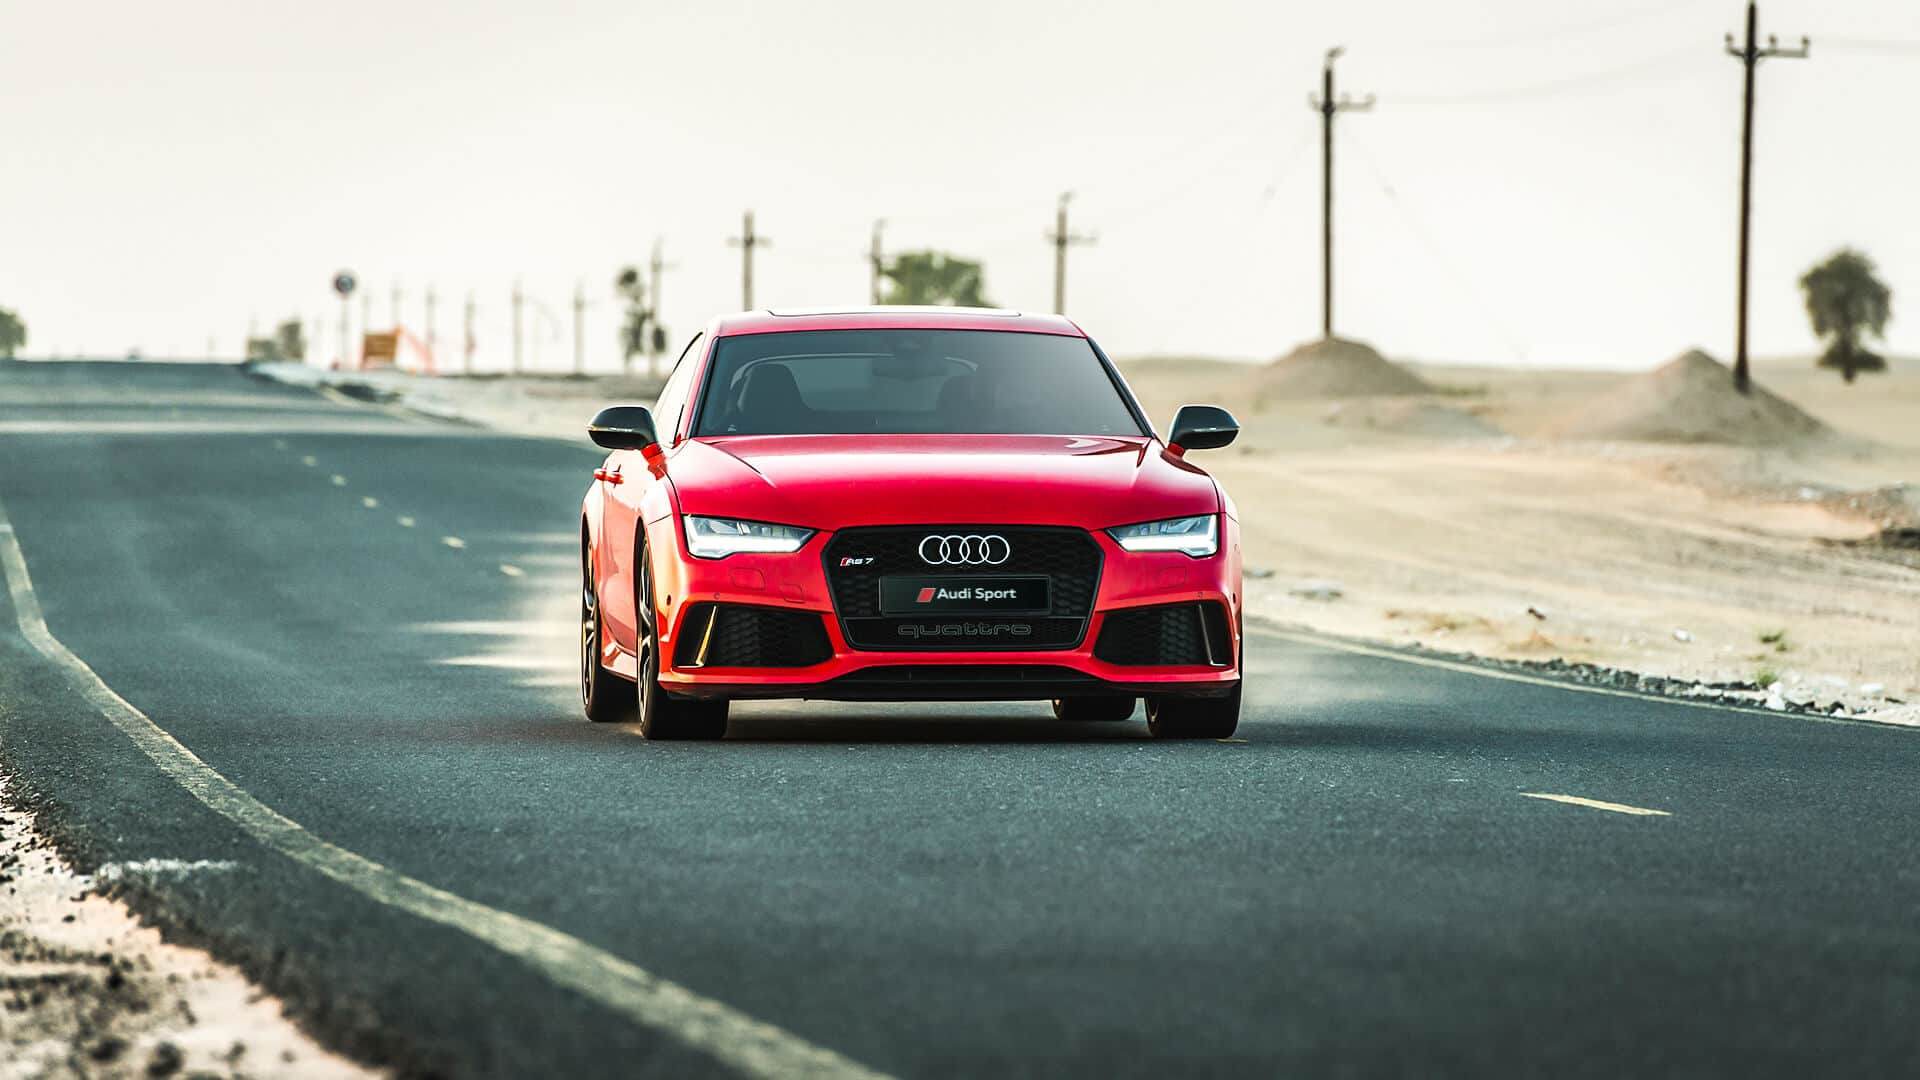 Audi Rs7 Sportback A7 Middle East 2017 With A Red Colour Play